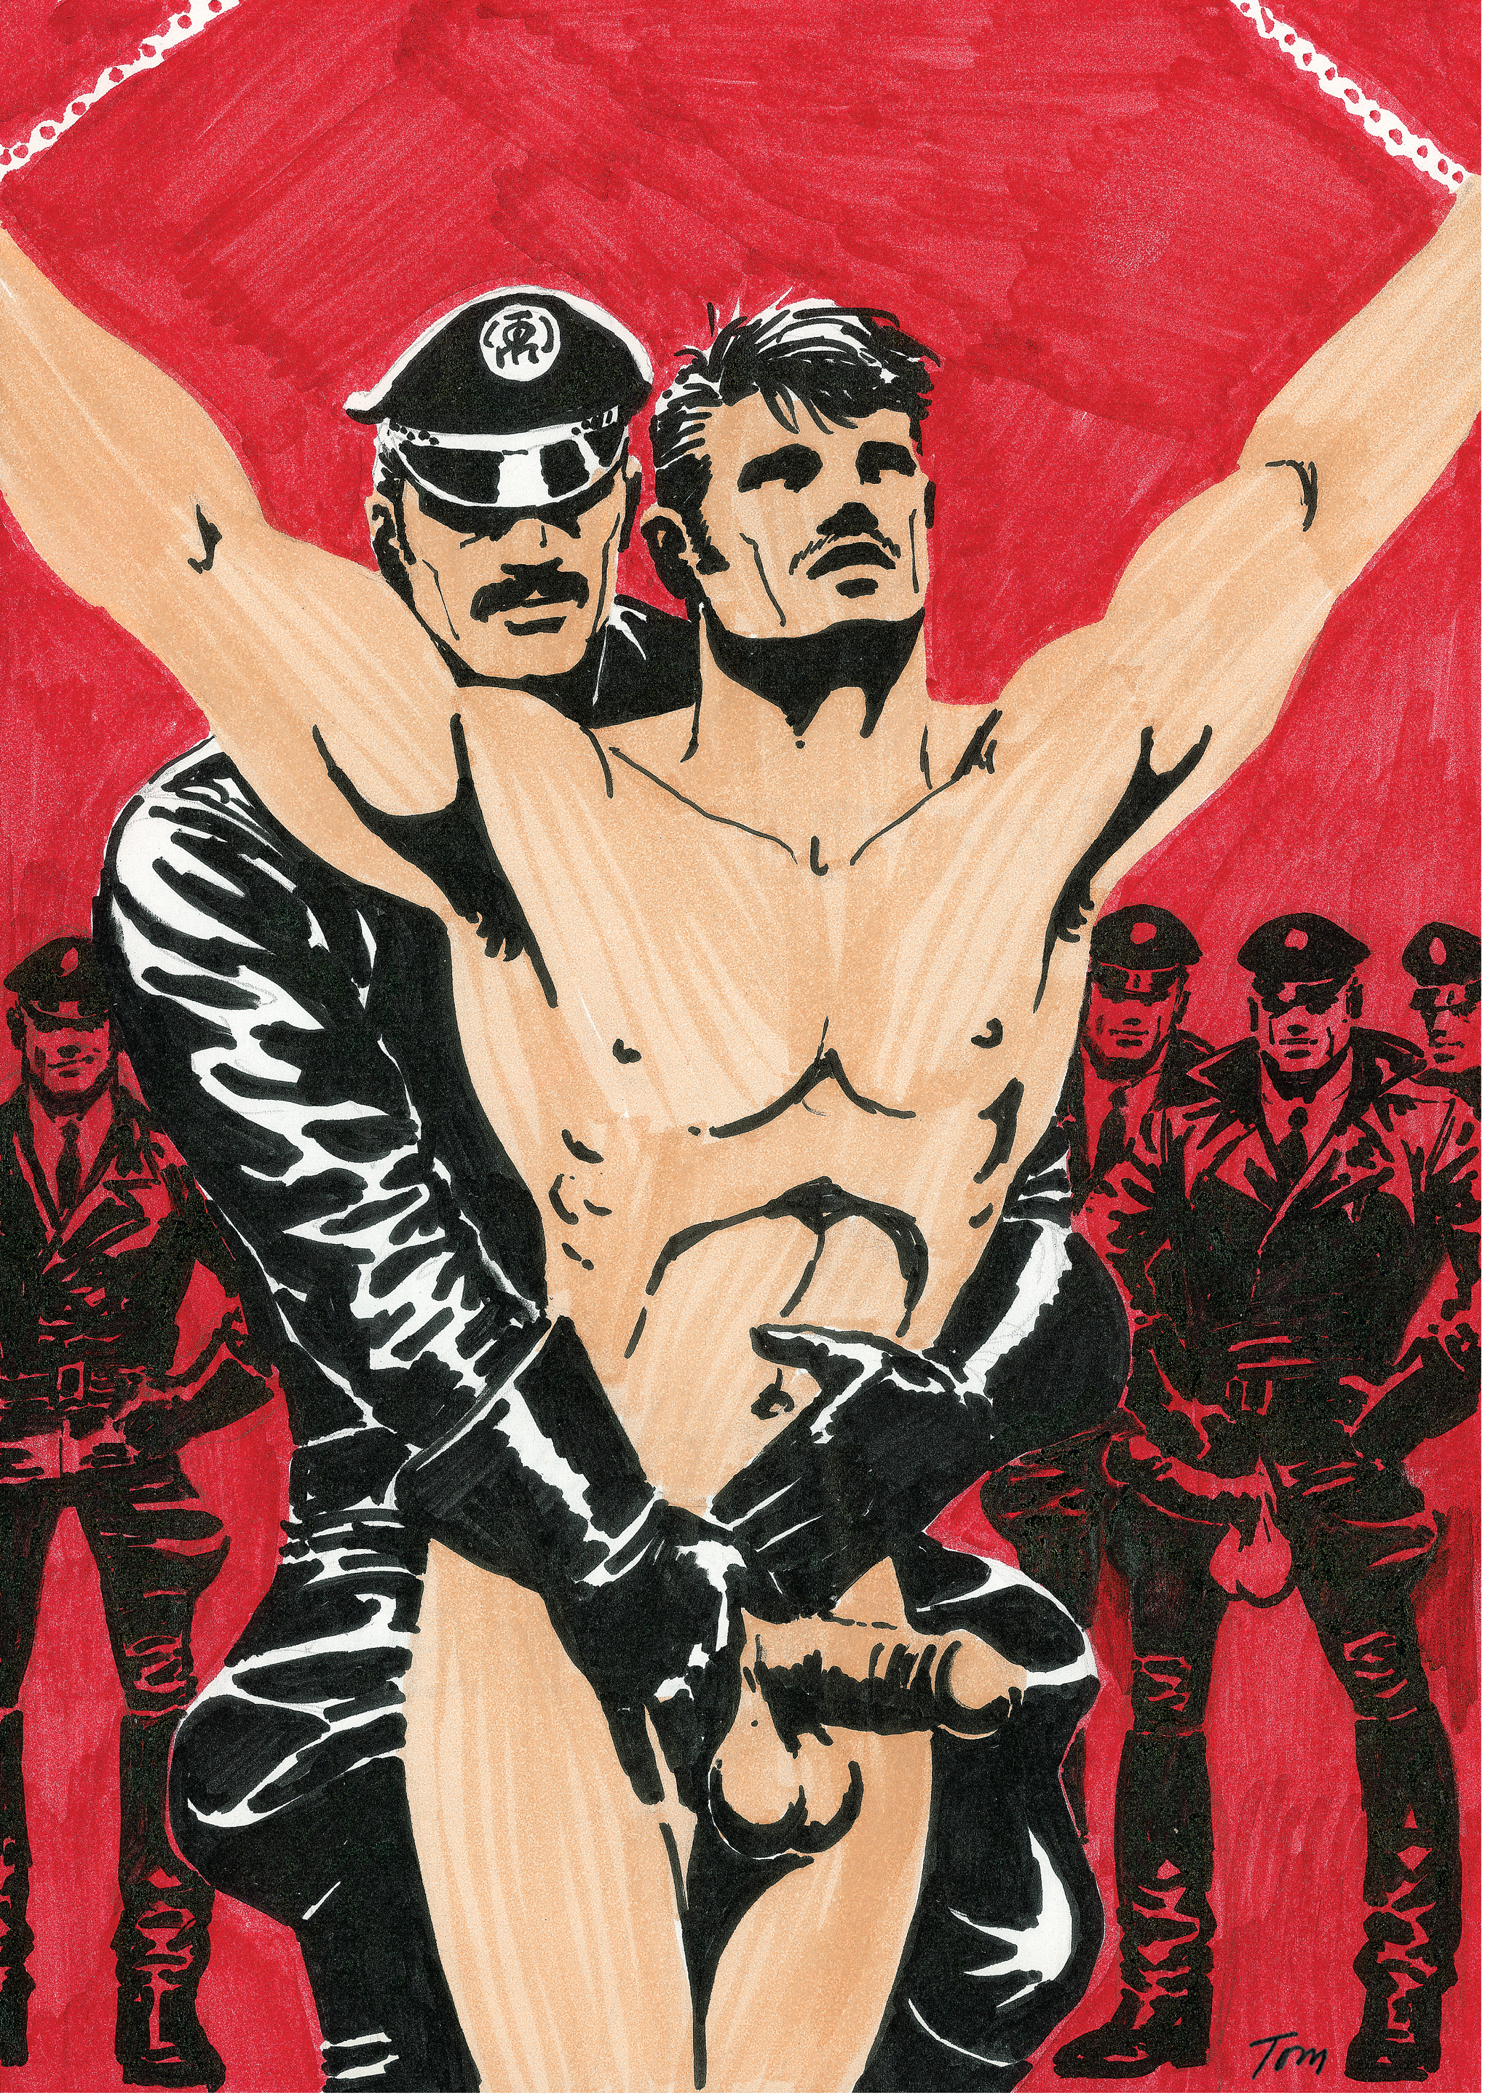 Tom of Finland - UNTITLED